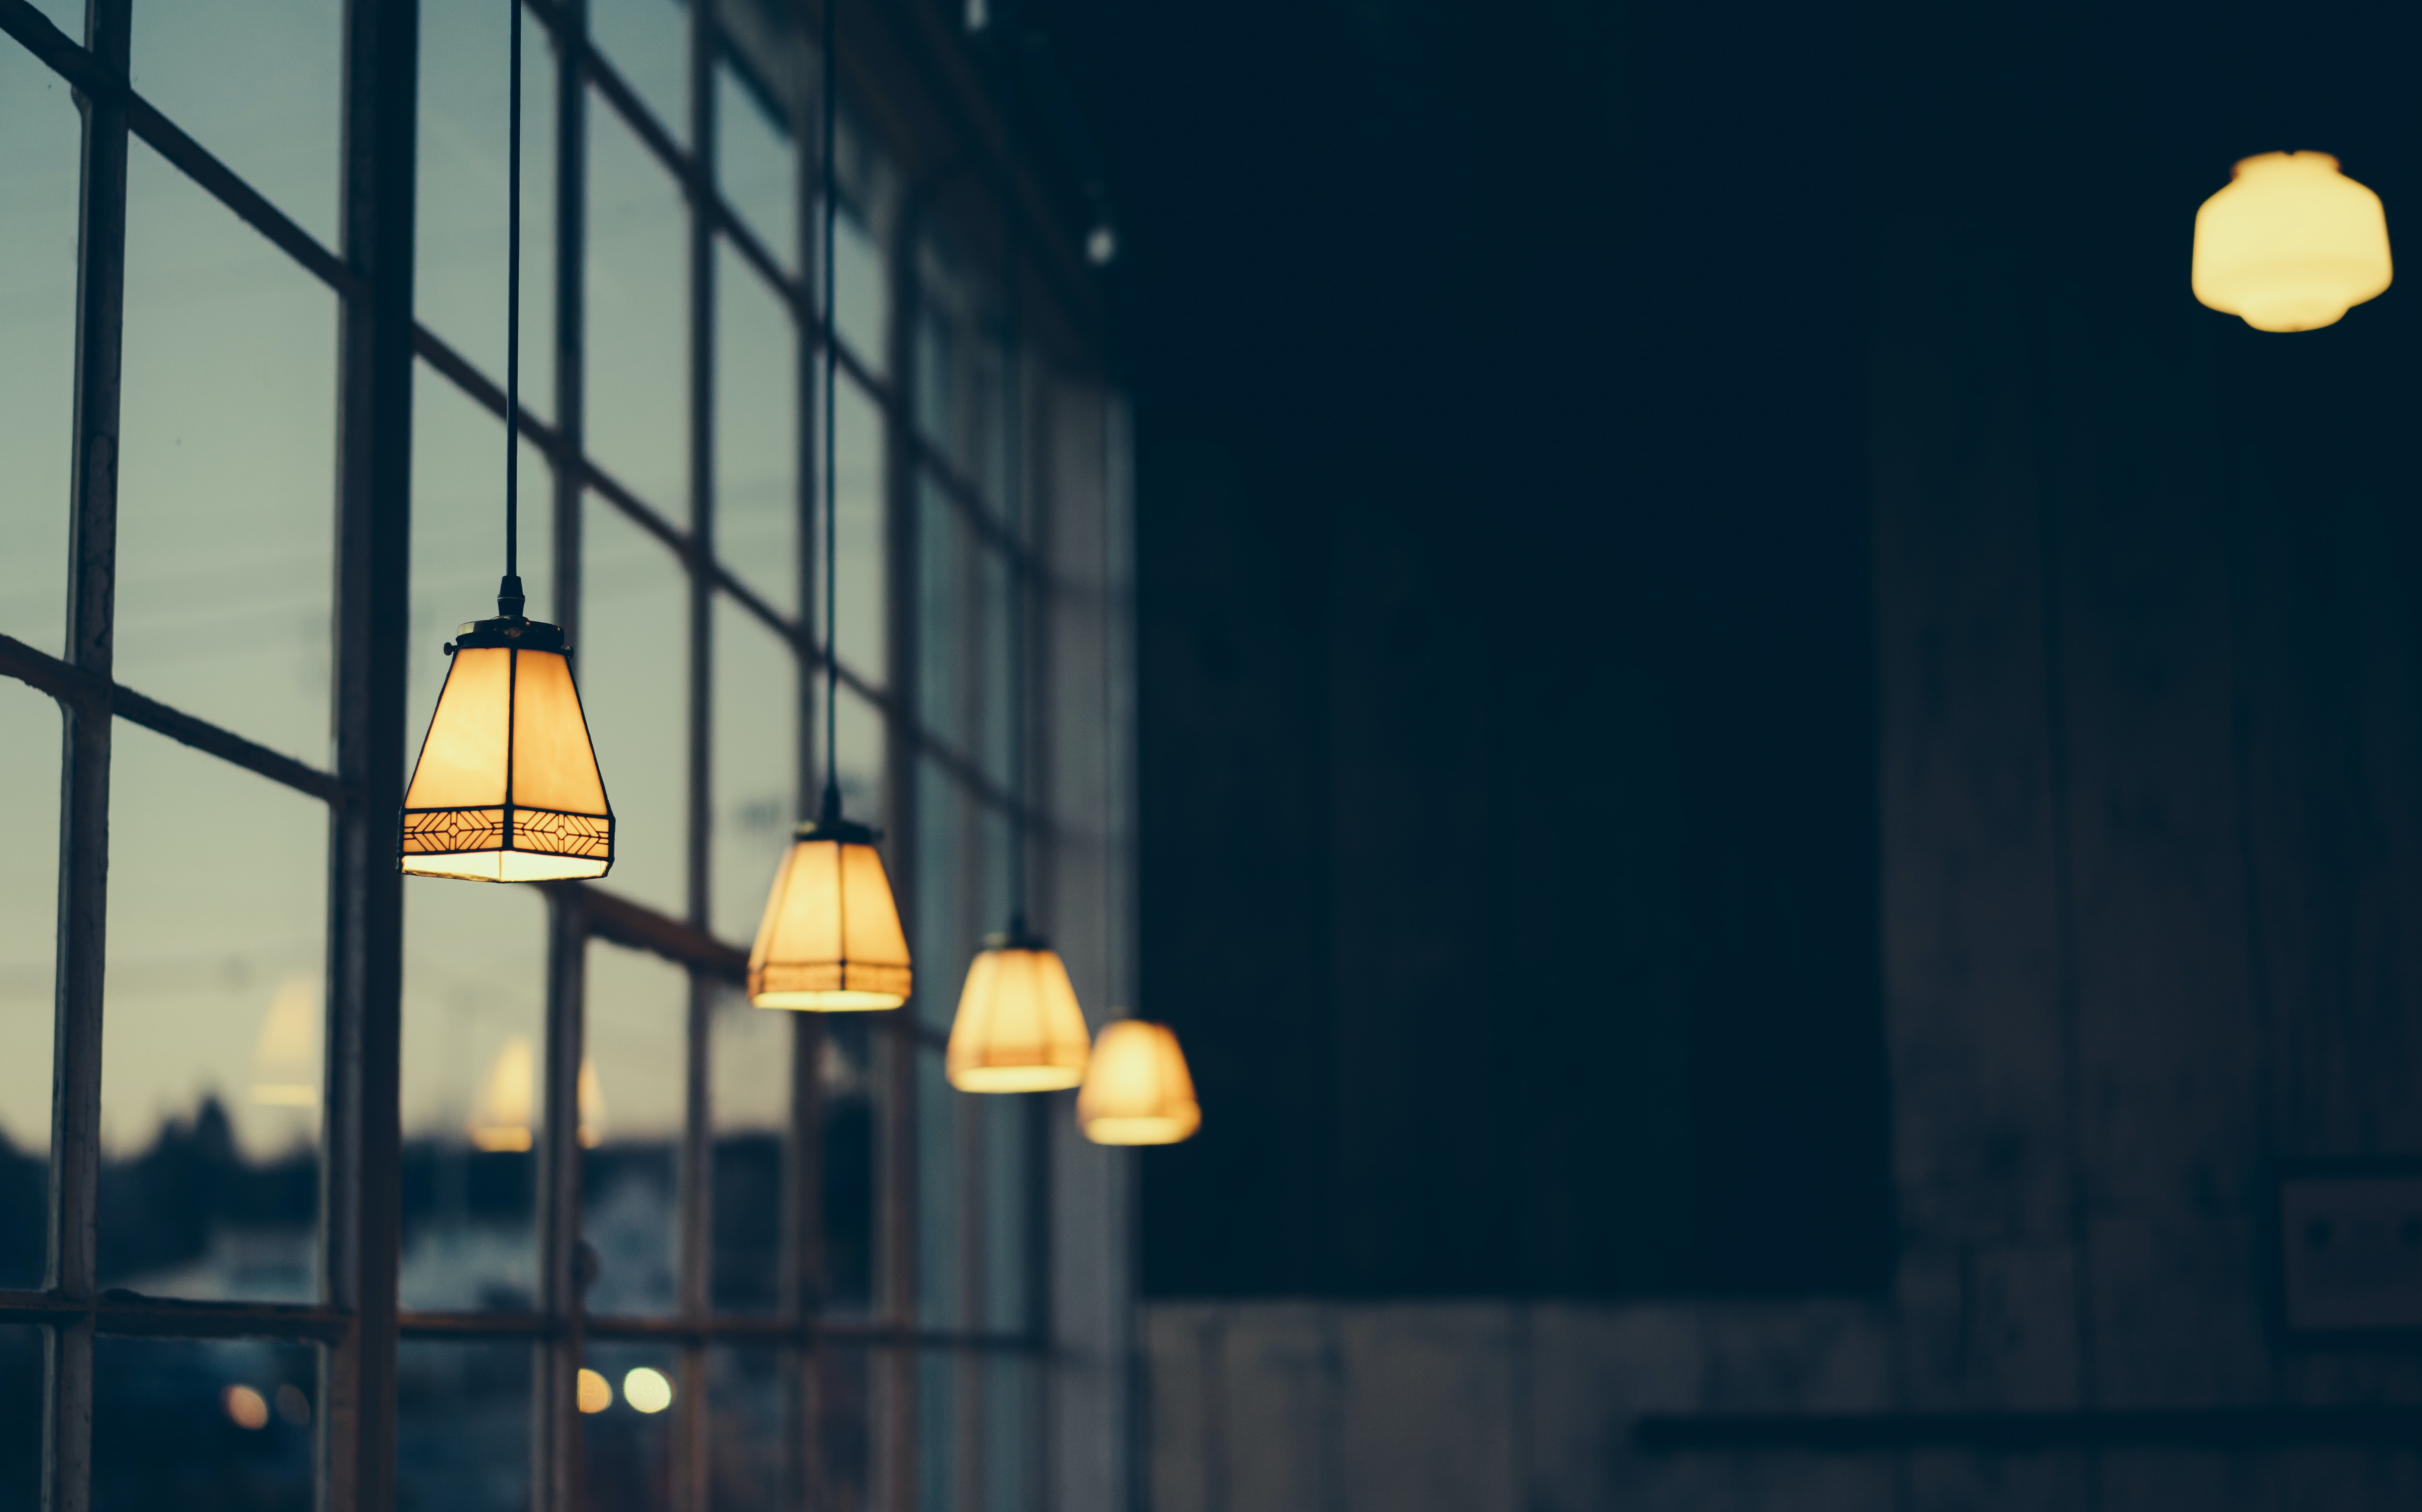 Lamps in yellow lampshades hanging from a ceiling near a window